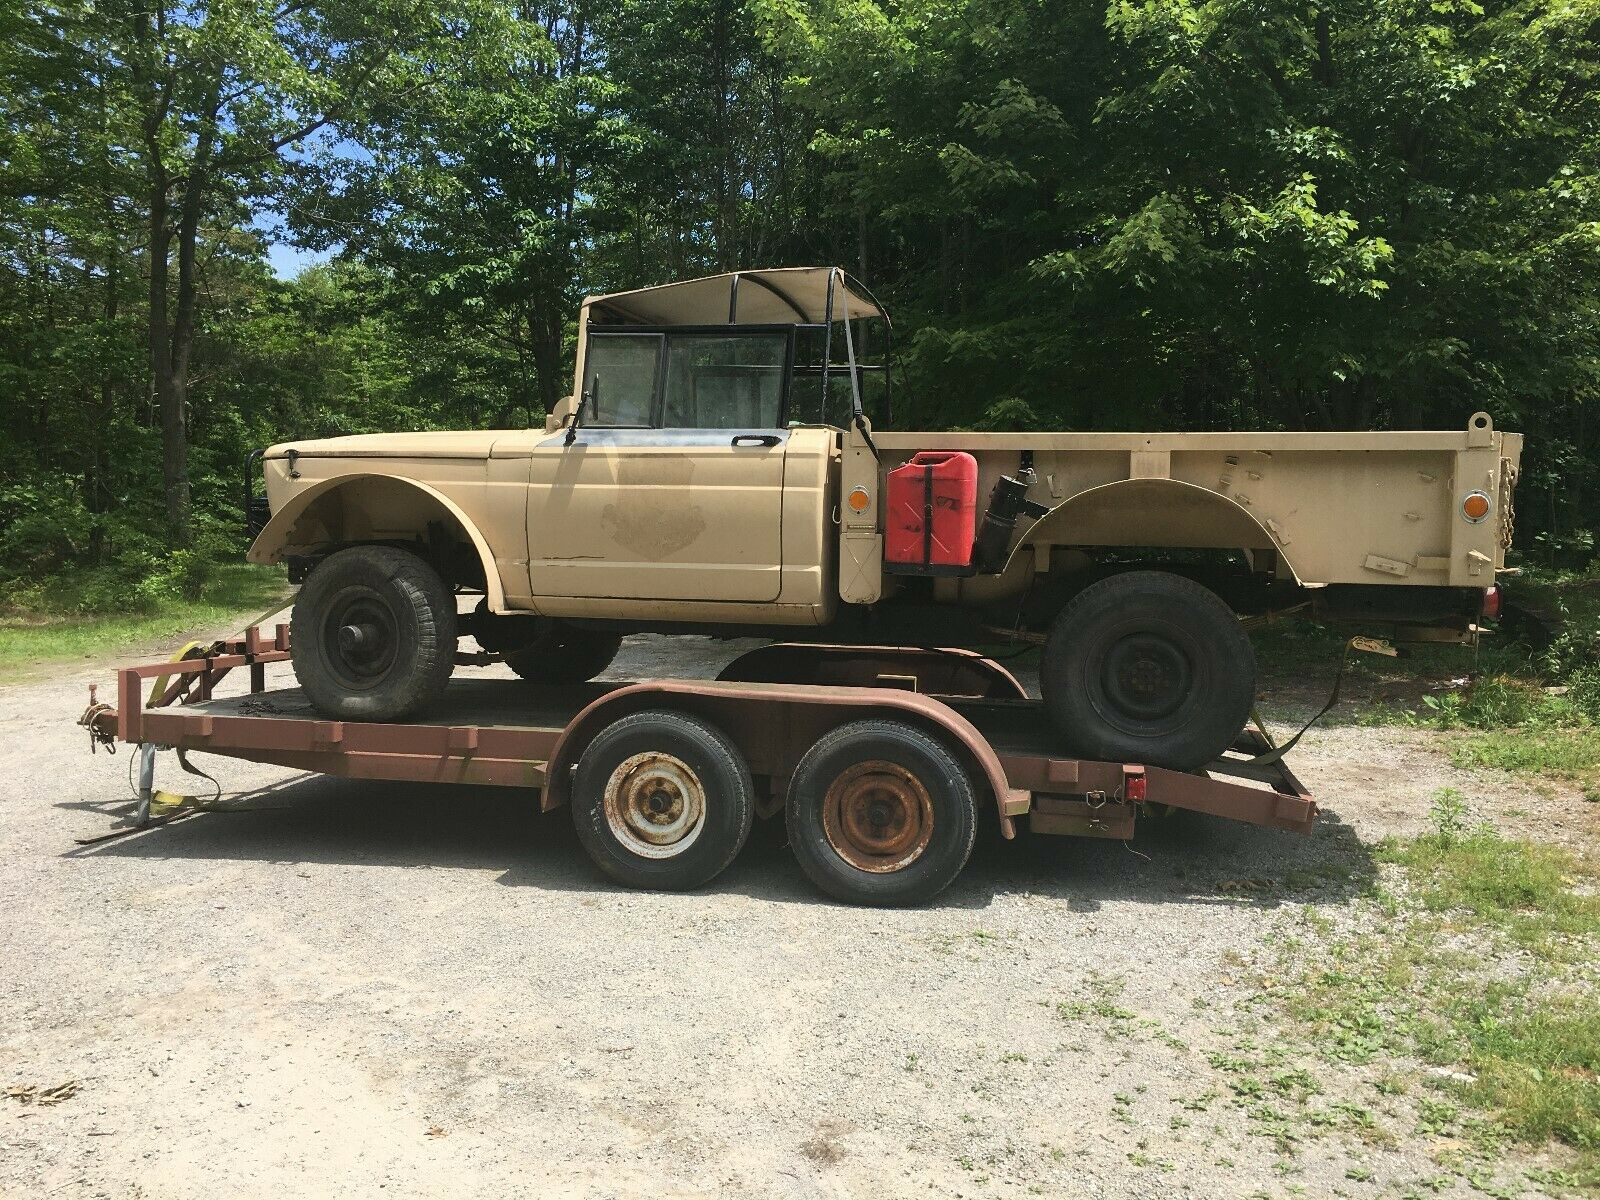 project 1967 Kaiser jeep 1 1/4 ton M715 military